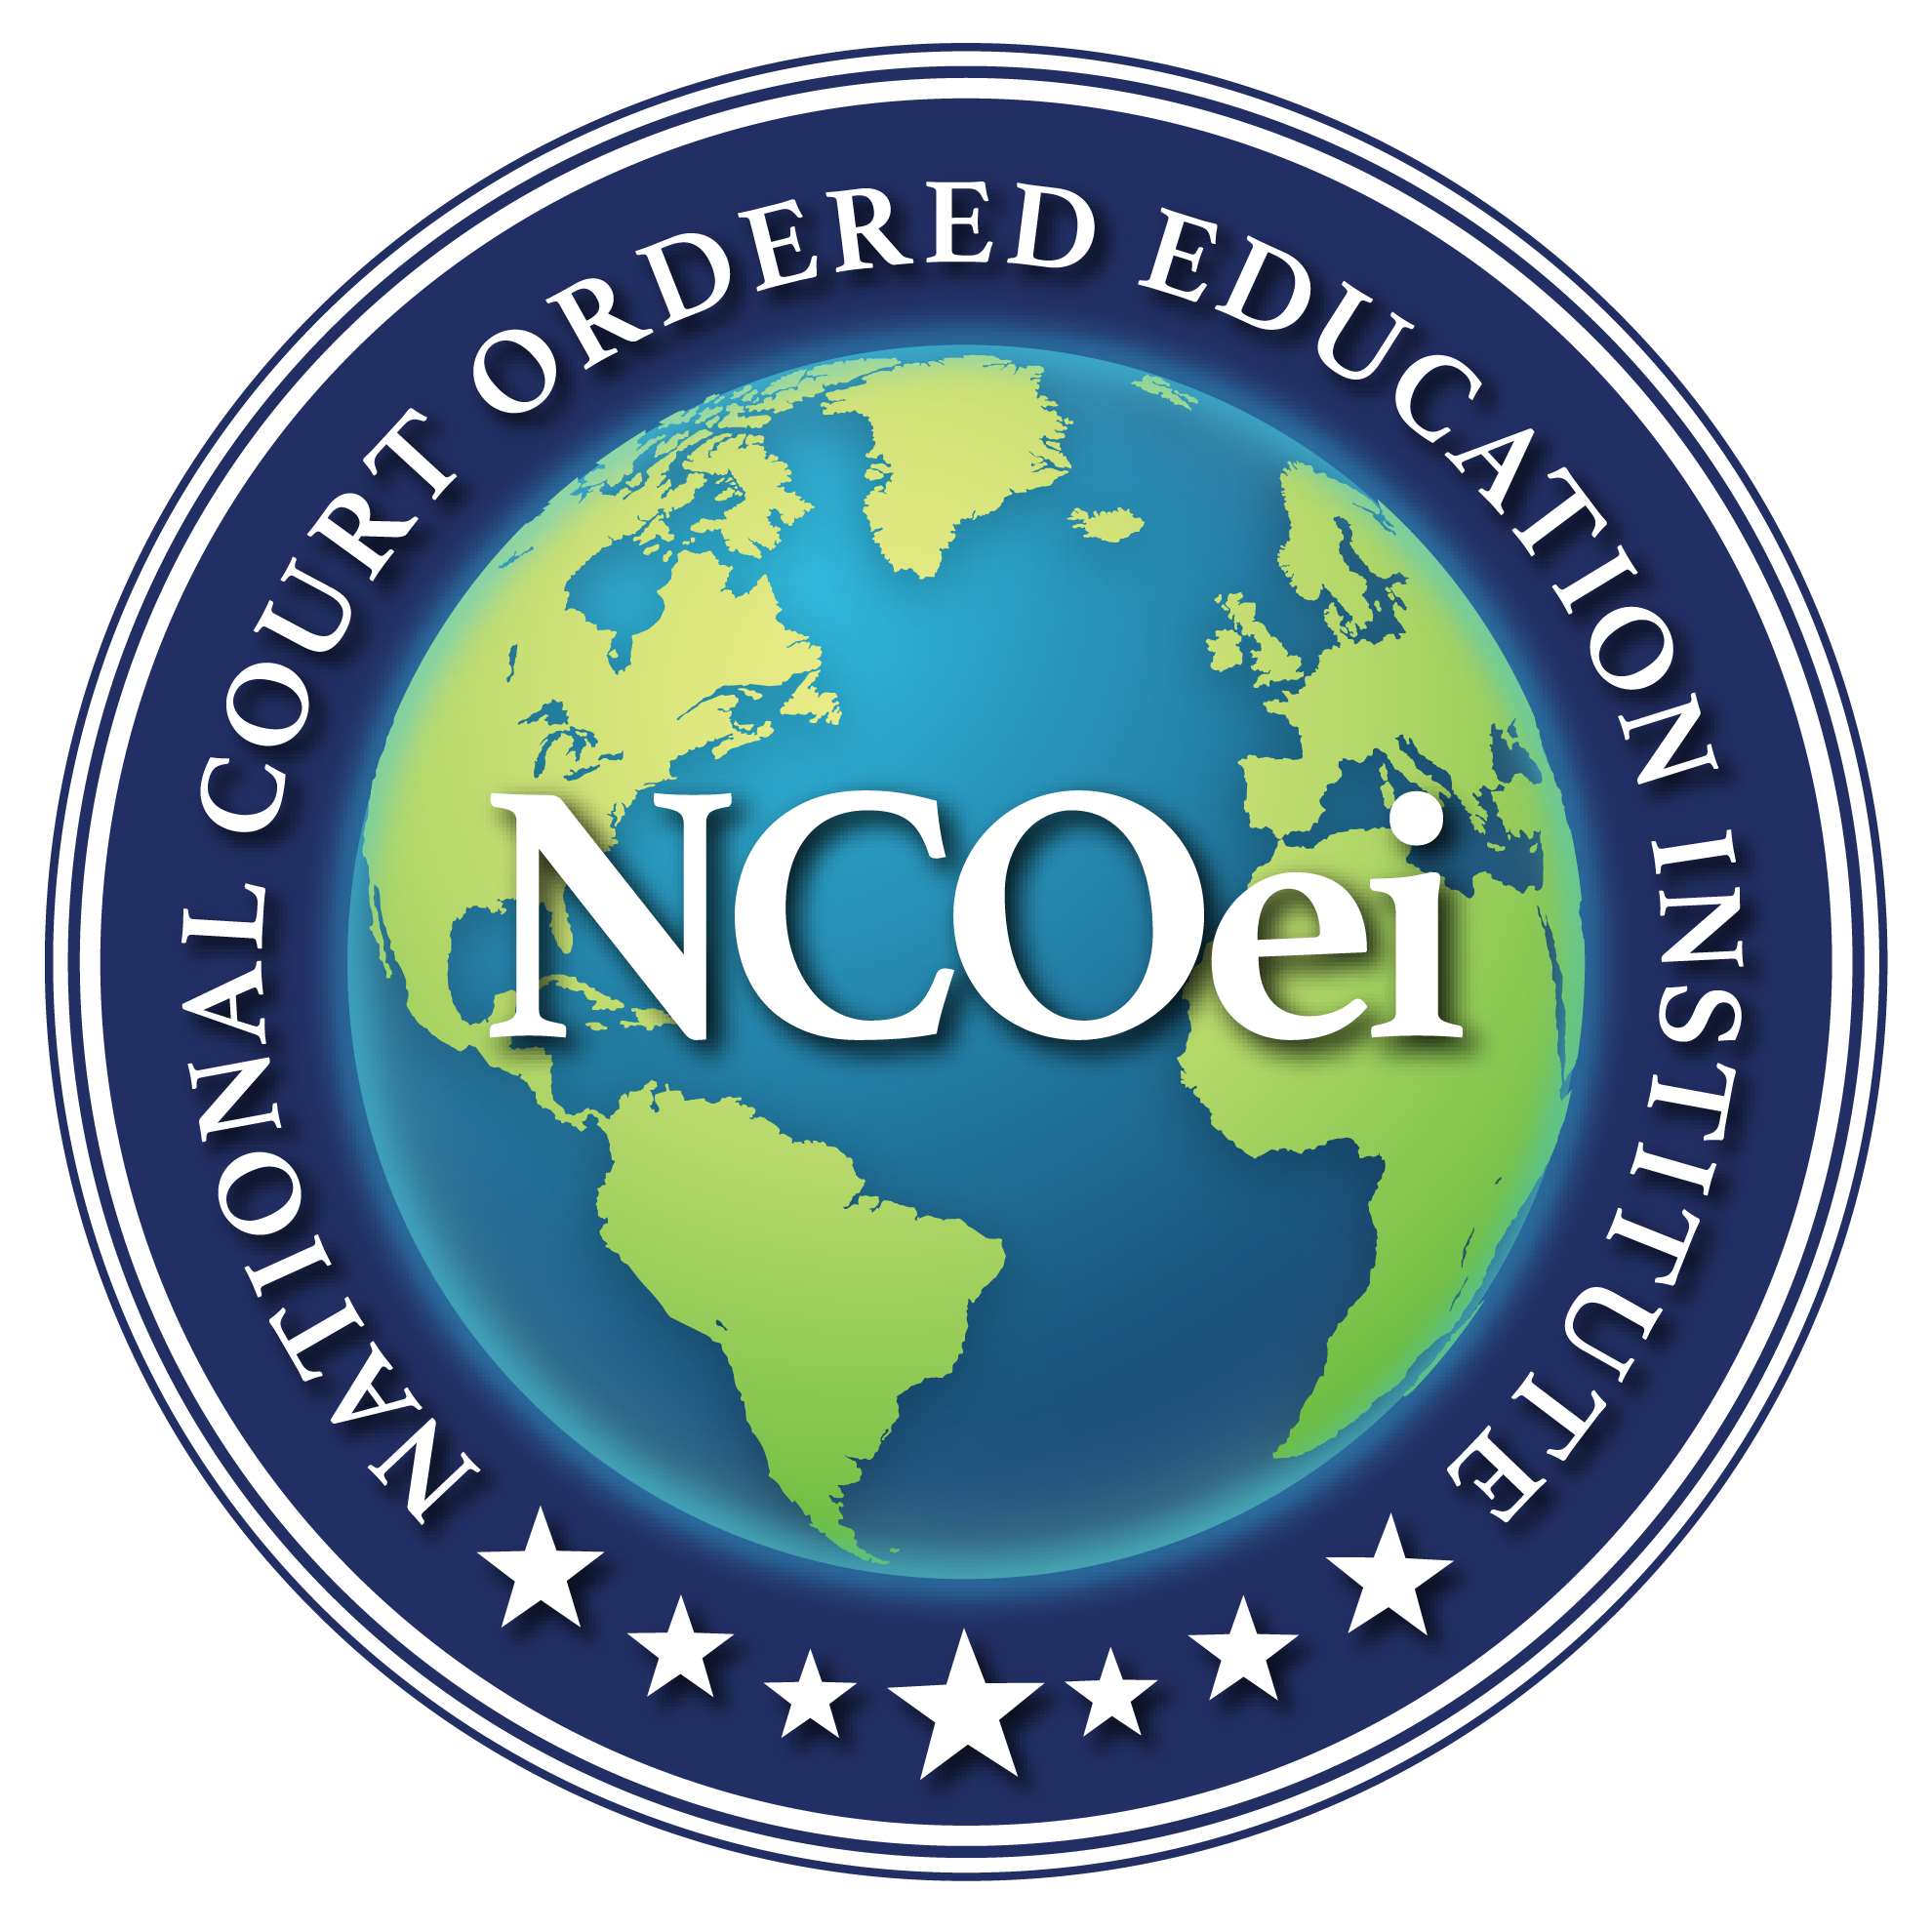 NCOei.Thinkific.com Online Courses for use in Court or on Probation available at https://ncoei.thinkific.com